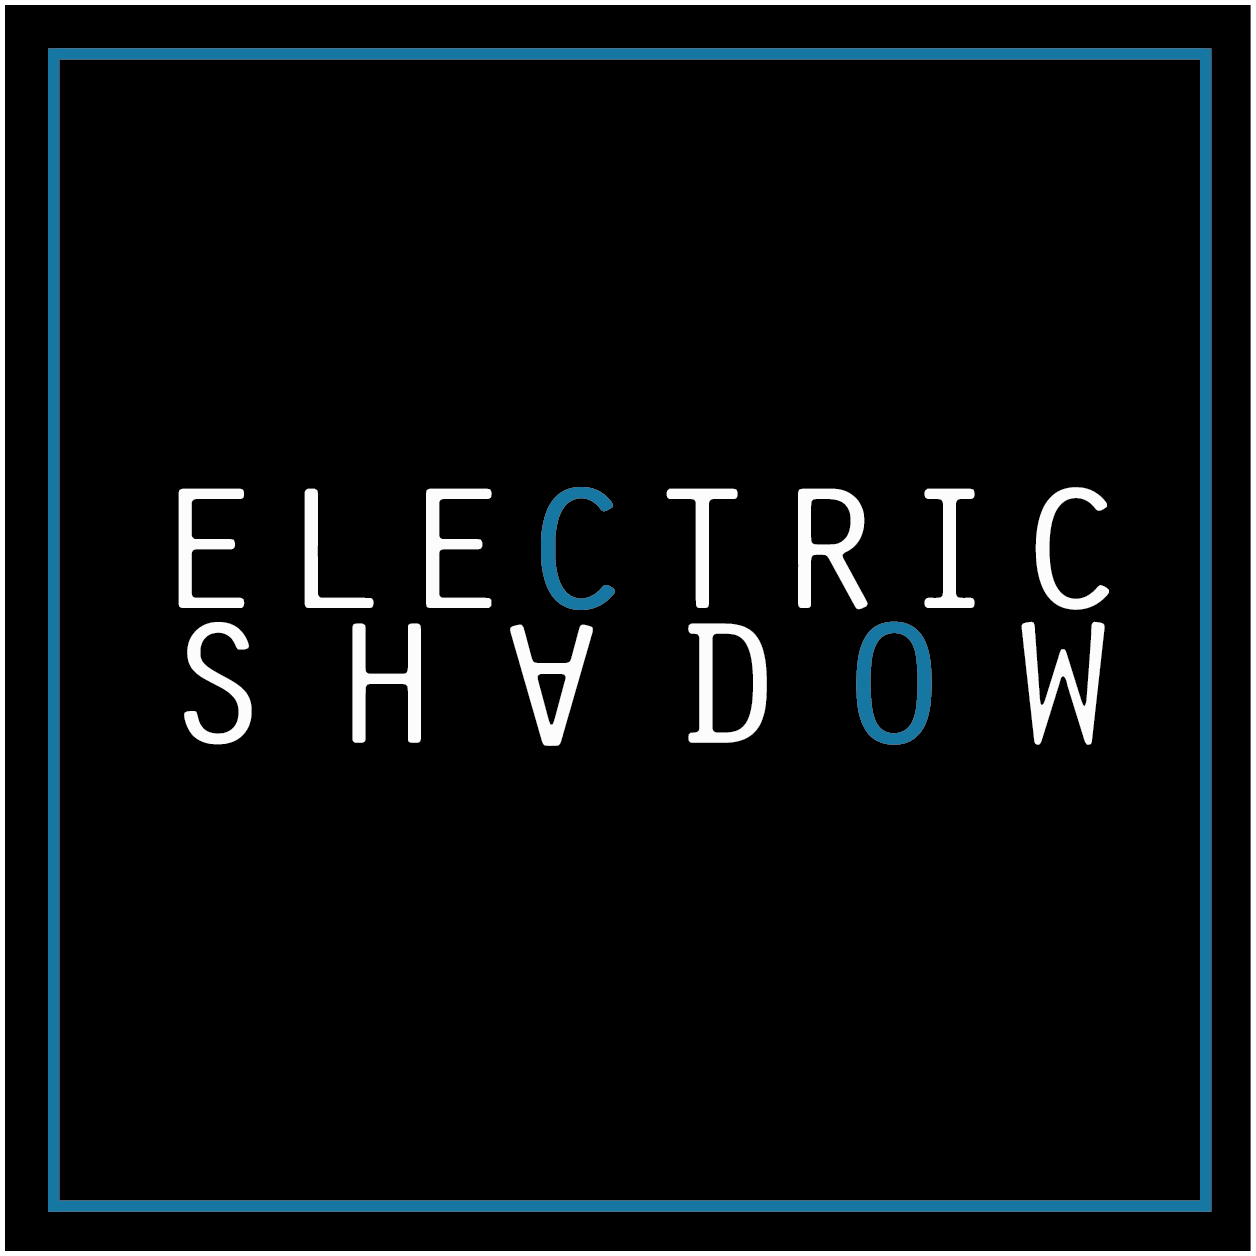 ELECTRIC SHADOW COMPANY